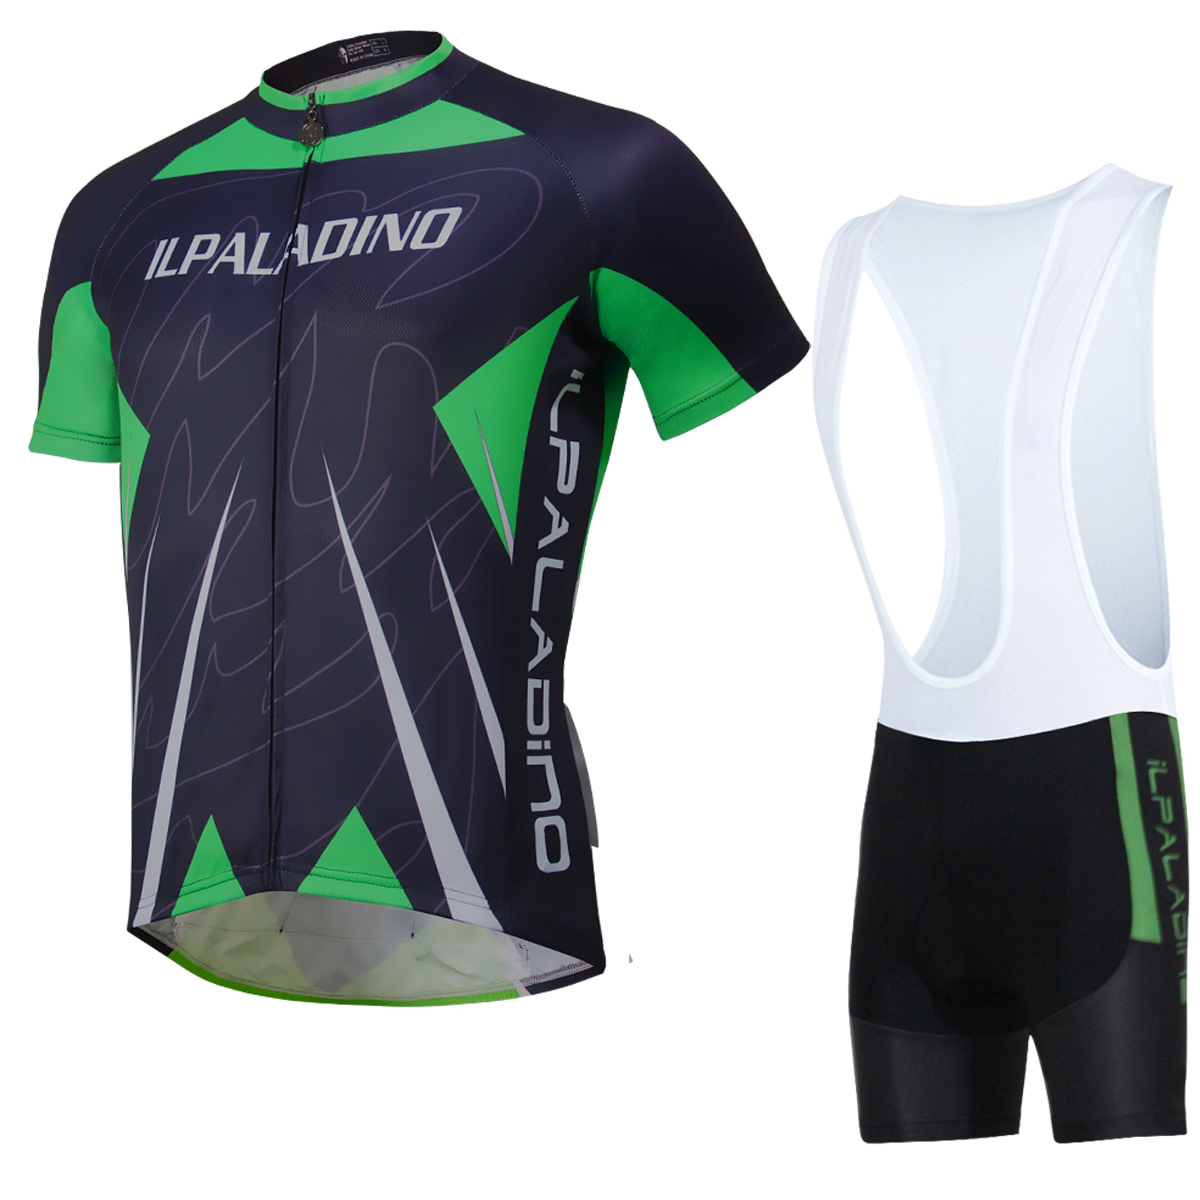 Brand New Cycling Jerseys 2017 ILPALADINO Cycling Sportwear Speed Racing Jersey BIB Bicycle Suit Free Shipping QI17DT760 ...